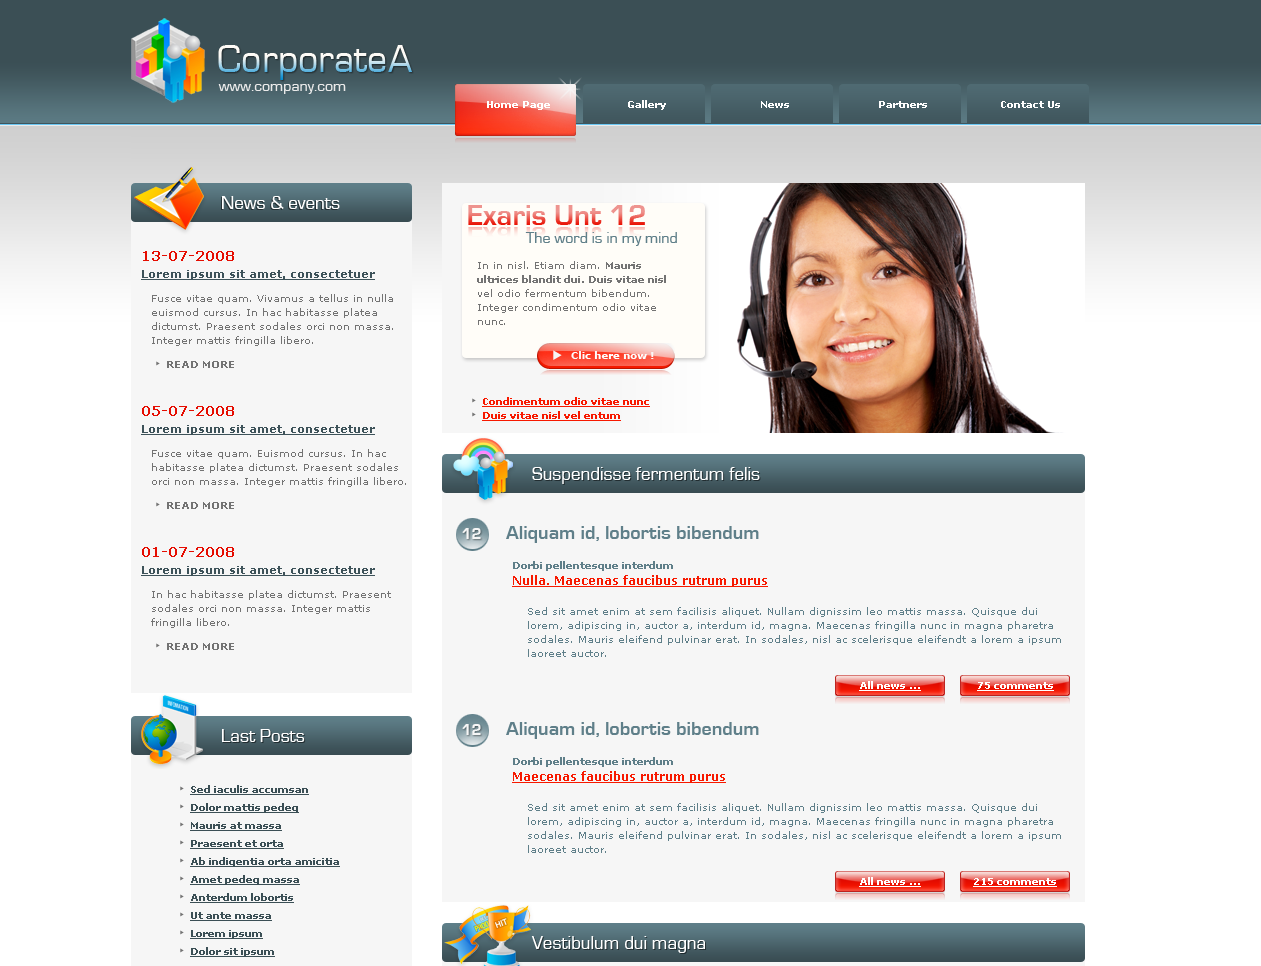 Free Download Corporate A Nulled Latest Version